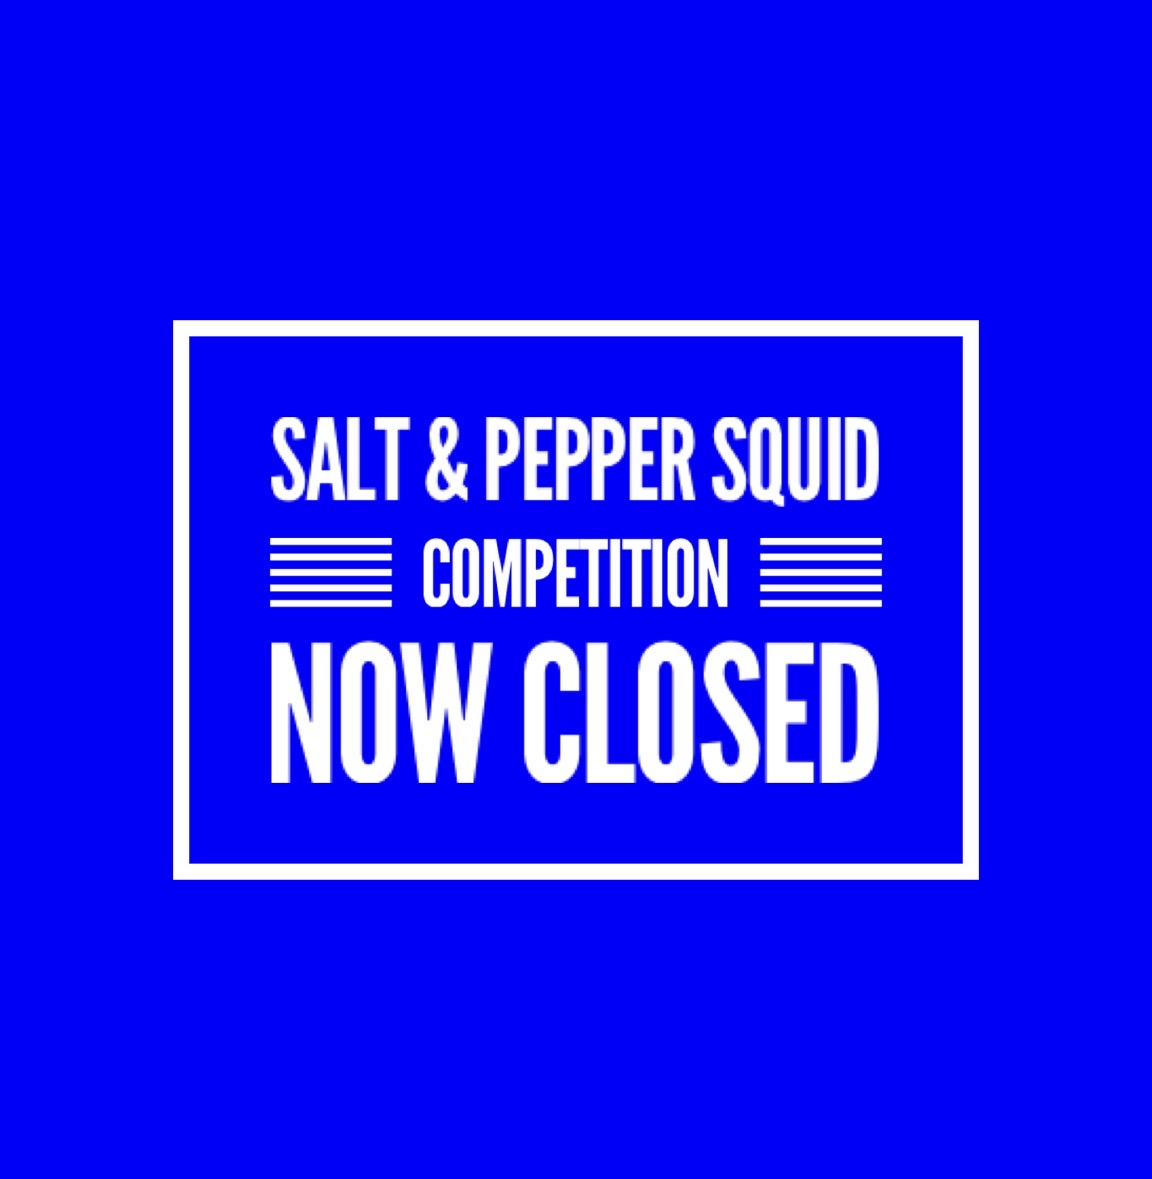 The Salt & Pepper Squid competition is now closed